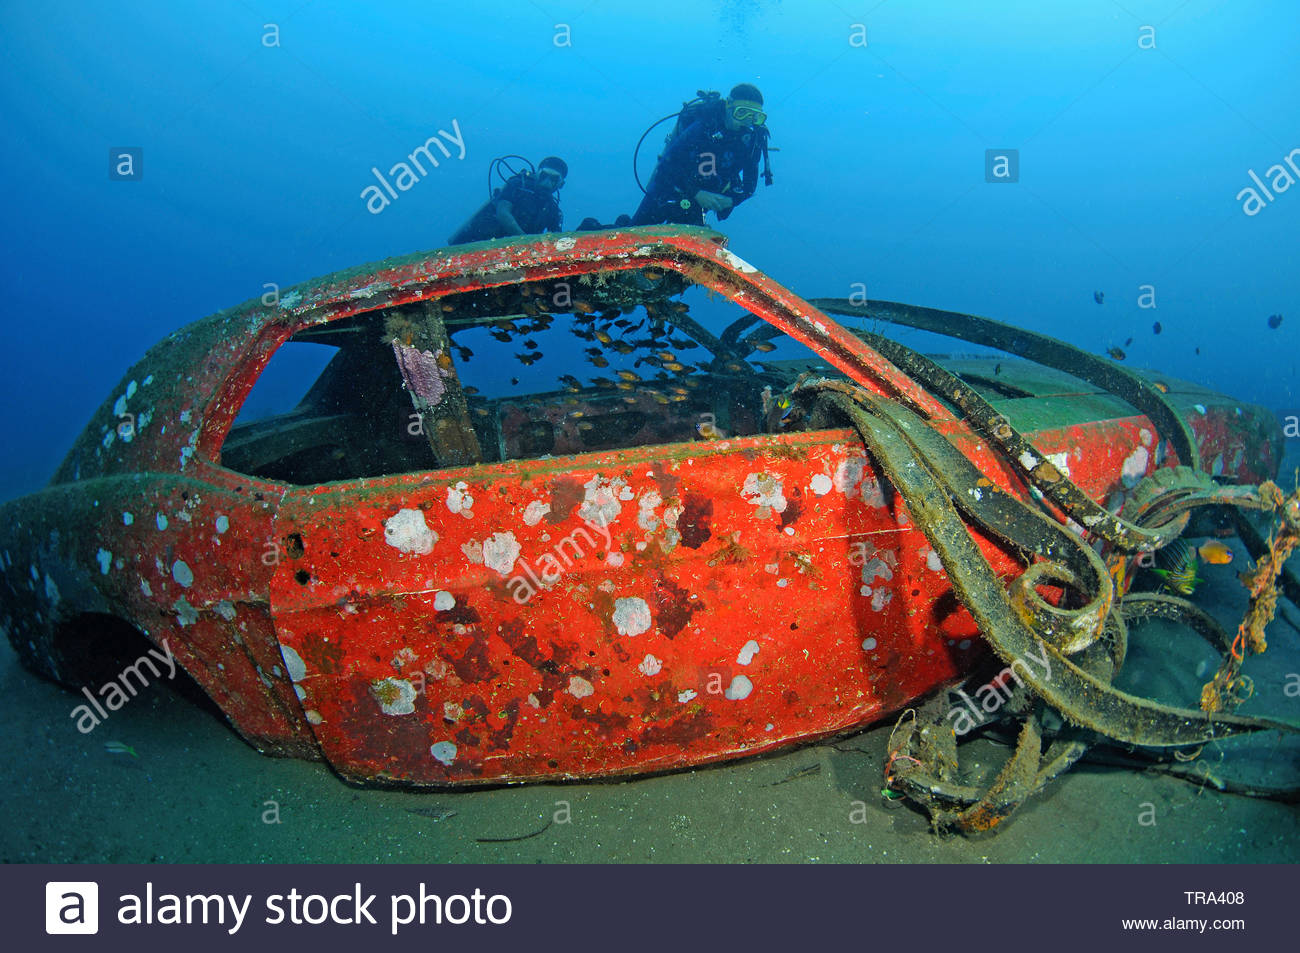 Scuba diver at a sunken Ford Mustang car, Dauin, Negros island, Philippines - Stock Image